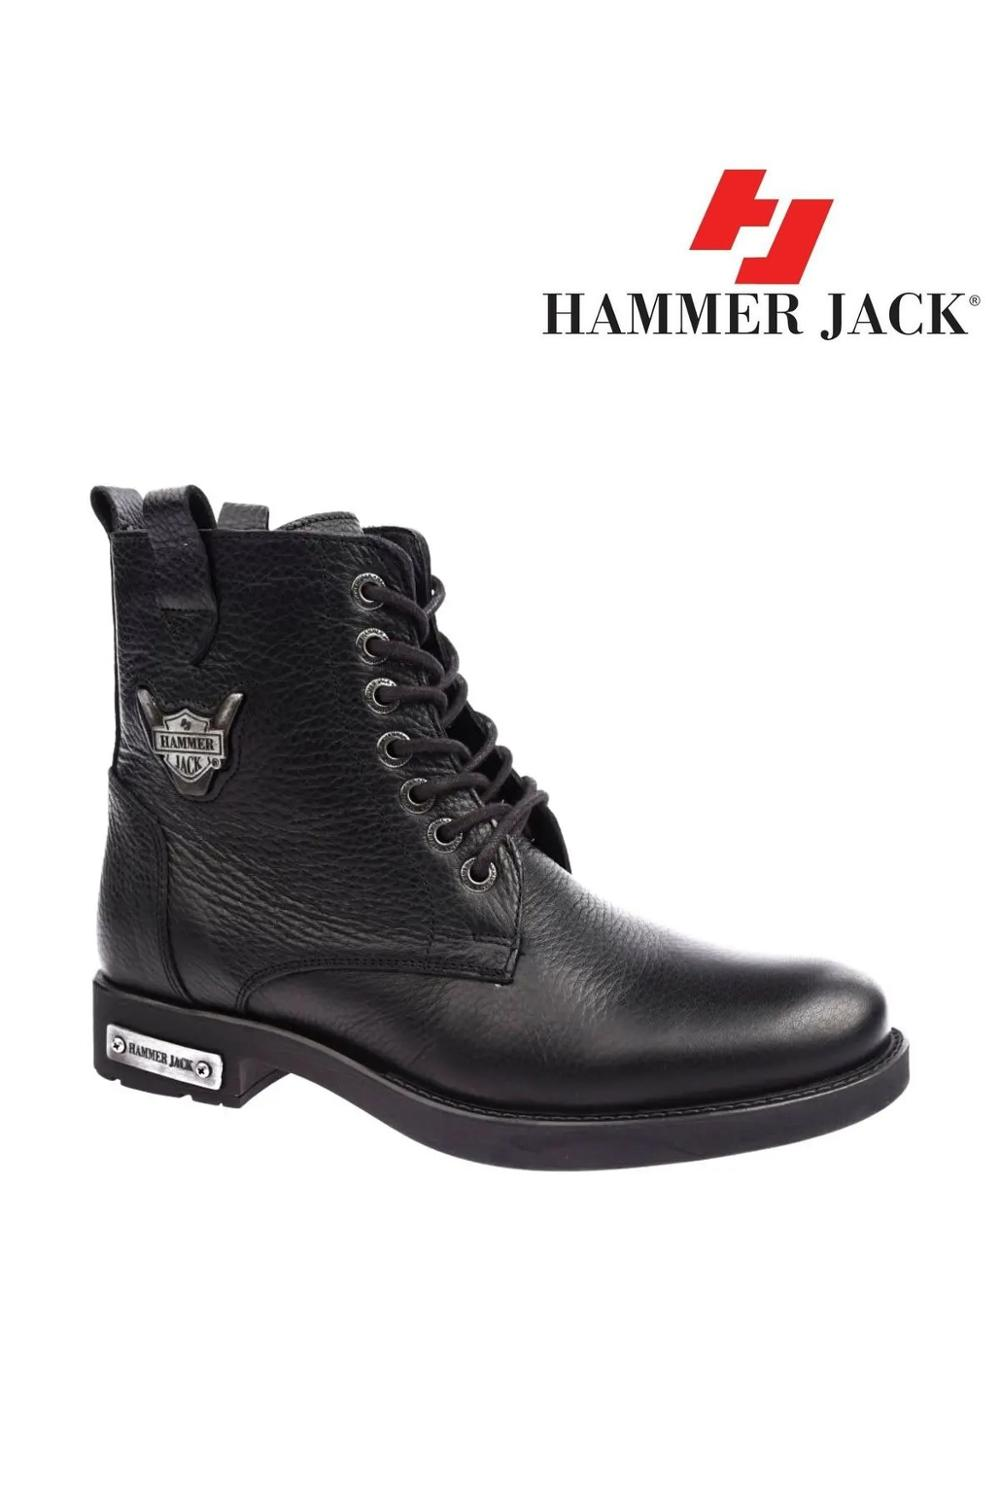 Hammer Jack Male Genuine Leather Boots 102 15200-M 5